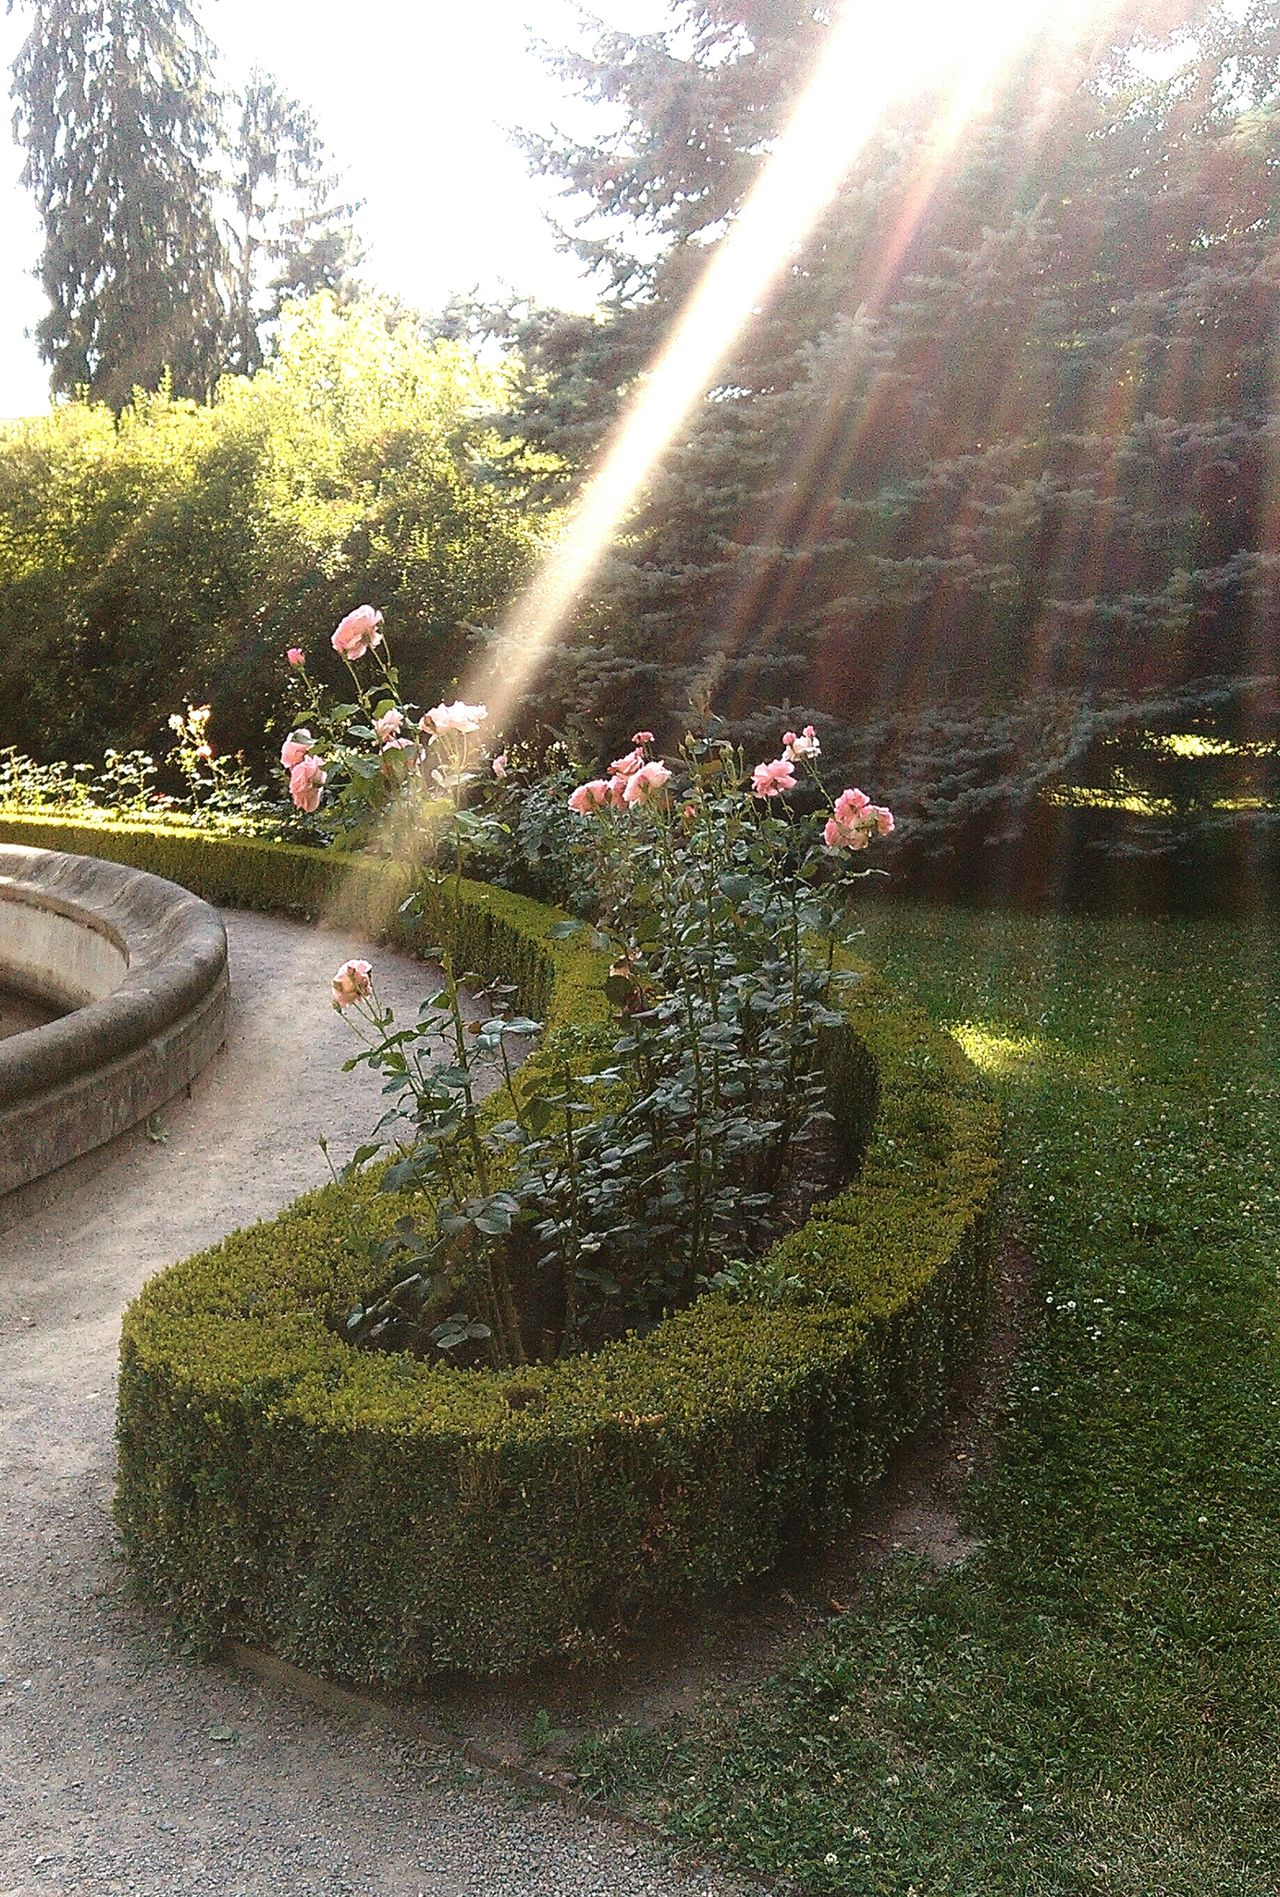 Garden Garden Flowers Garden Decor Garden Art Sunlight Sun Light Roses Rosas Rosario Rosarium Sun Lines Shine A Light Sunshine Sunny Day Castle Garden Rose Garden Sun Light Reflection Reflected Light Light Trails Light Sun Light Through Trees Plants Trees Greenery